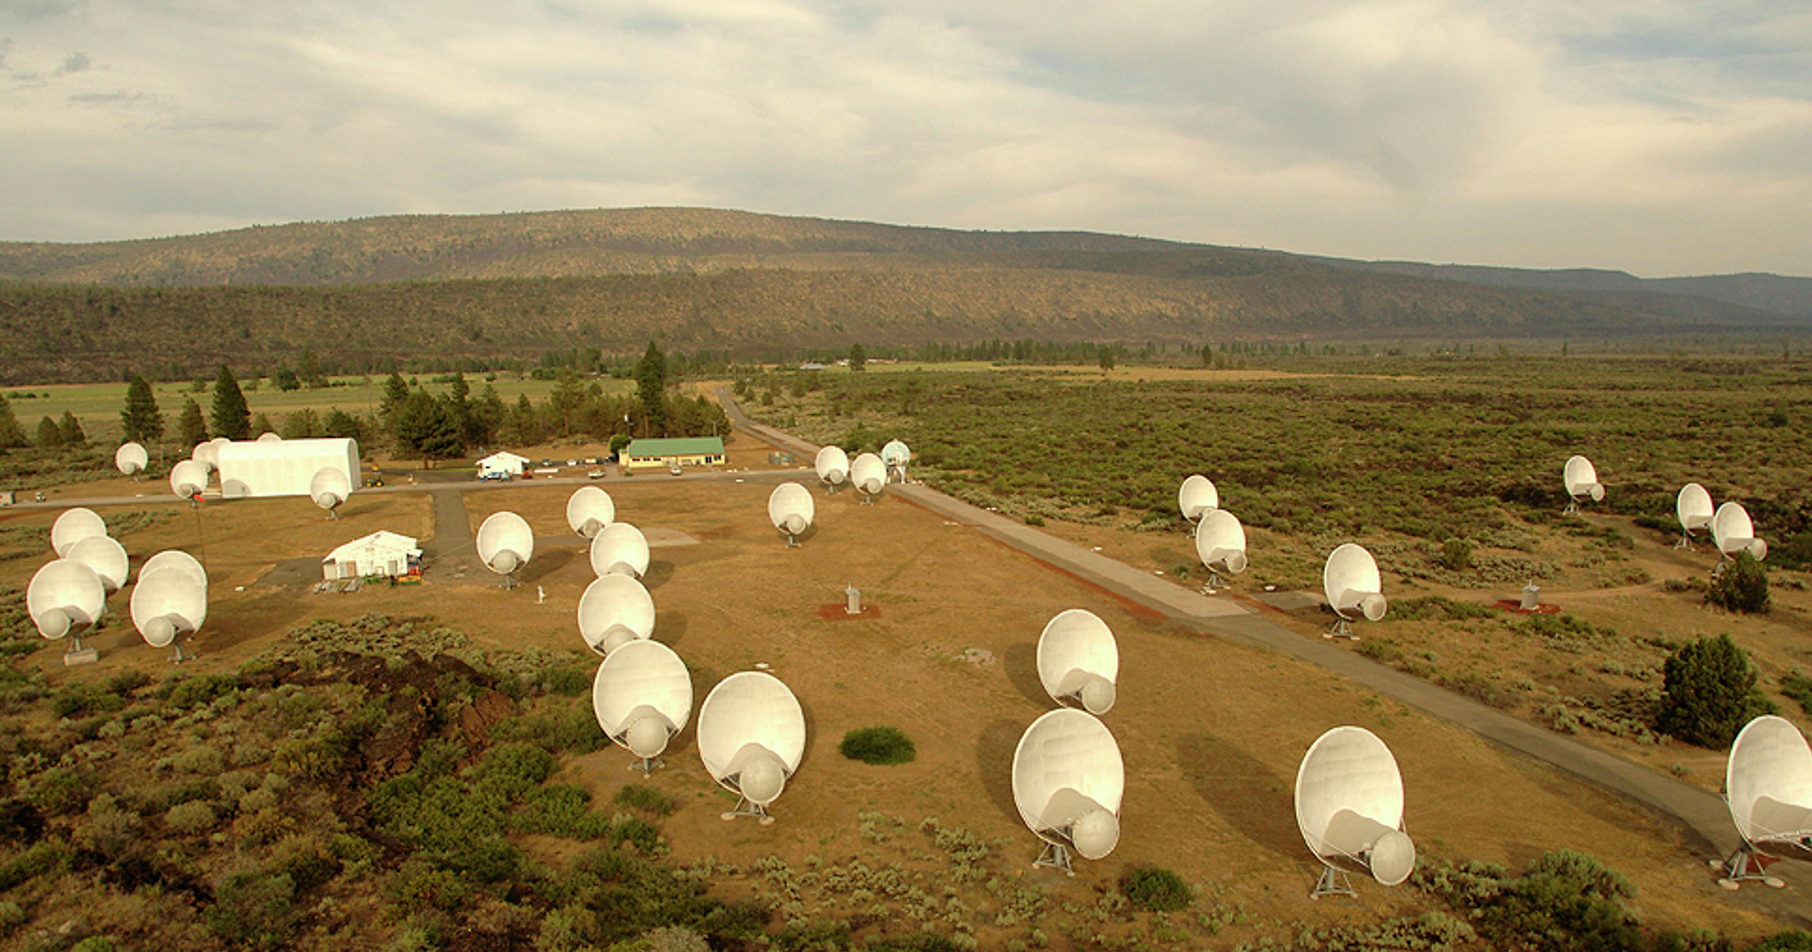 Is There Anybody Out The Planetary Society Facts About Very Large Array Allen Telescope